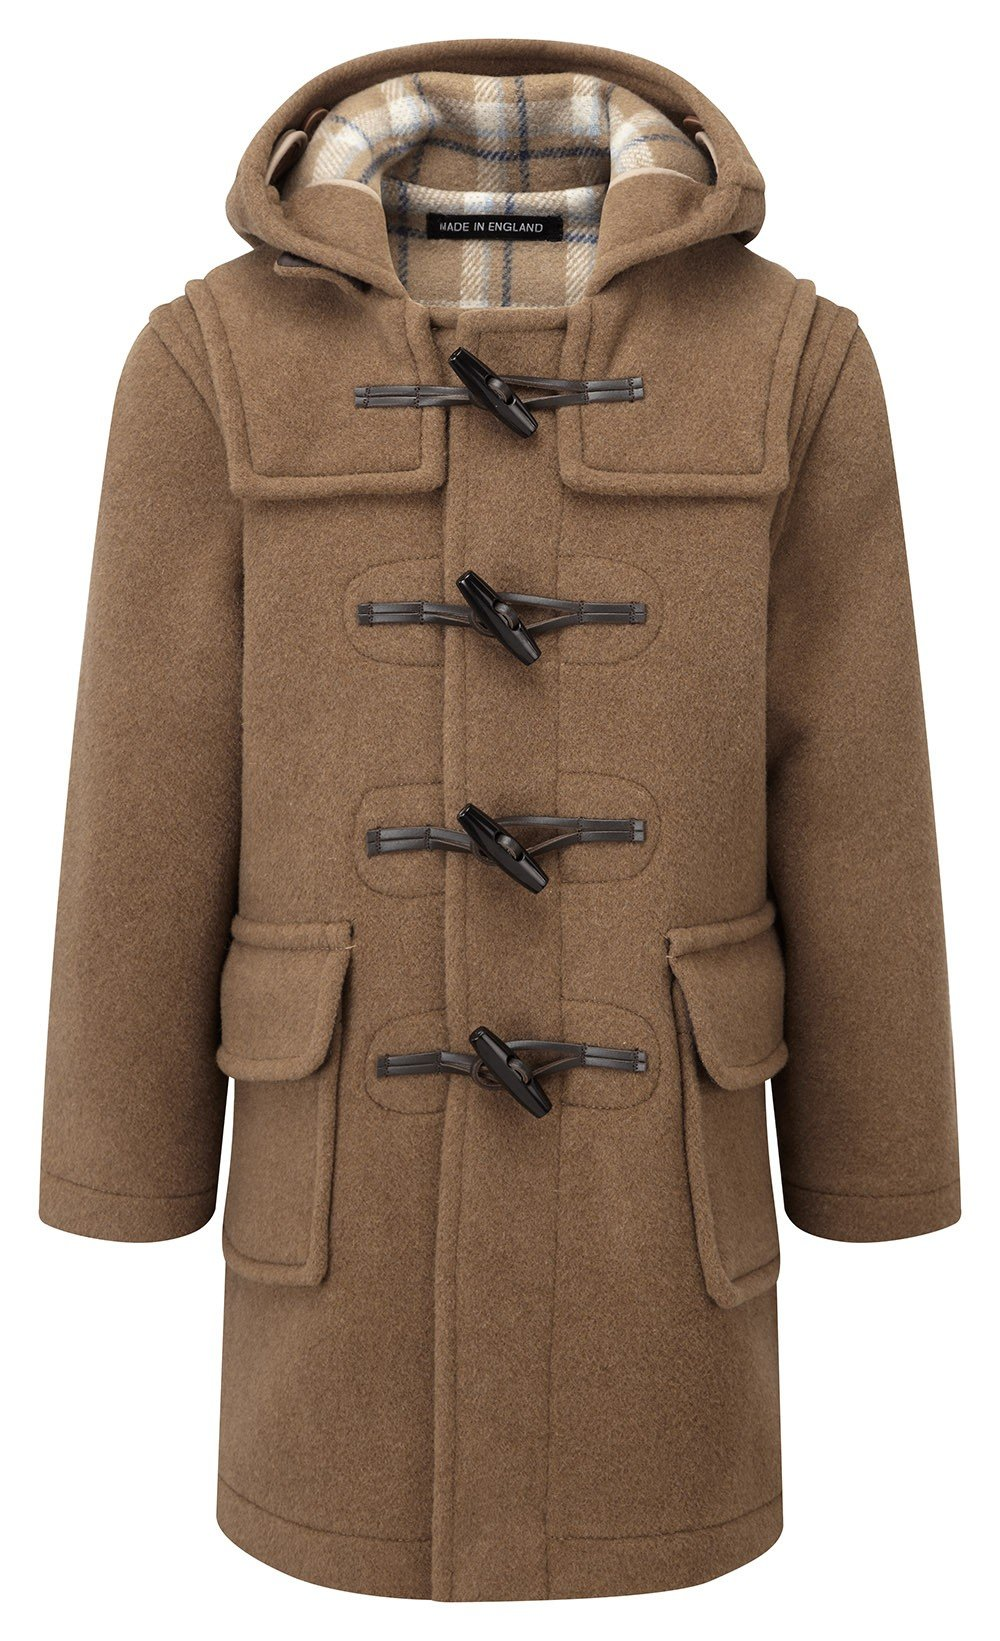 Kids Classic Duffle Coat (Toggle Coat) in Camel (7-9Y)